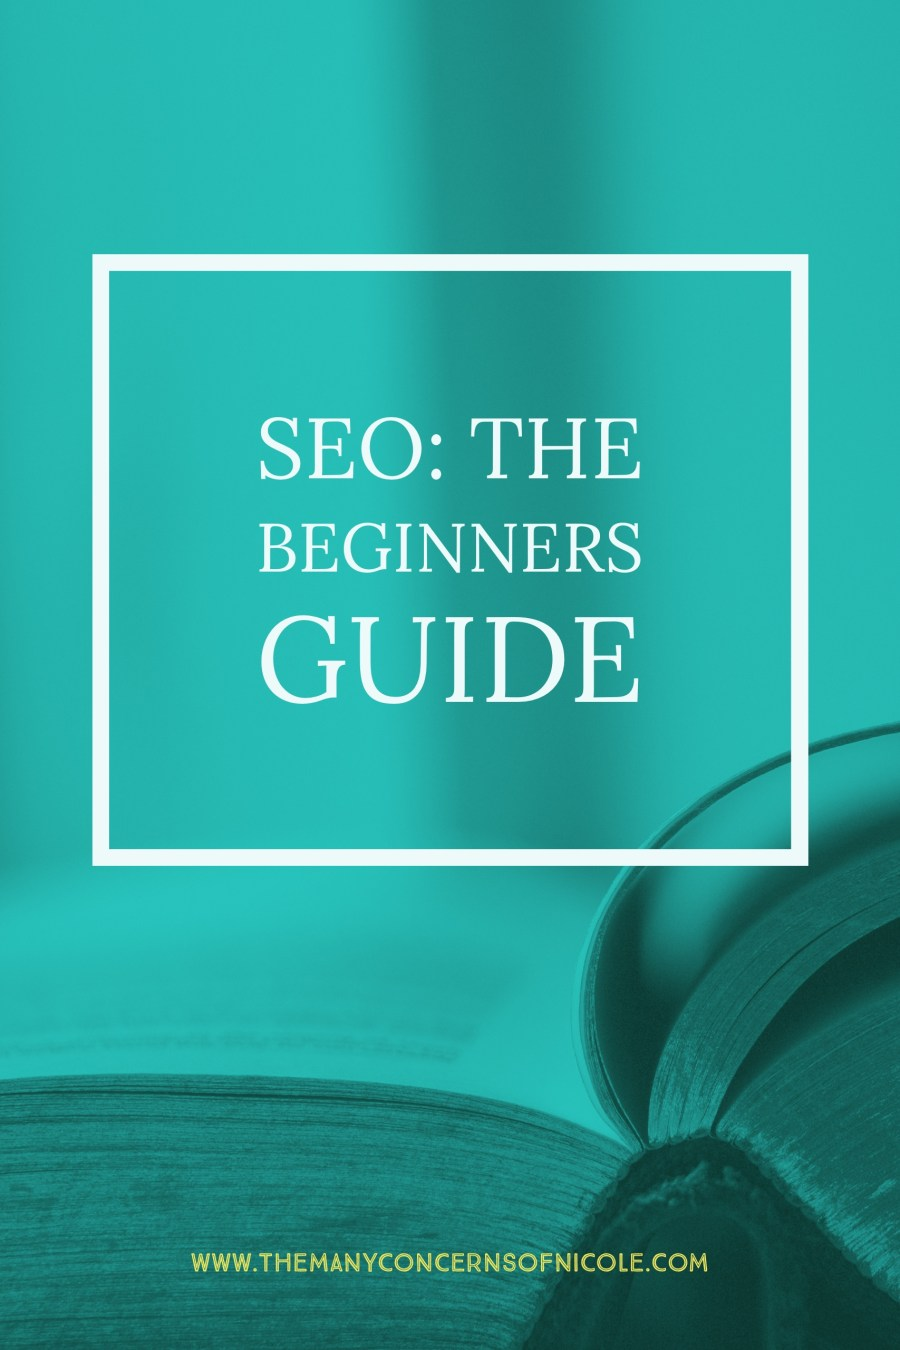 SEO: The Beginners Guide